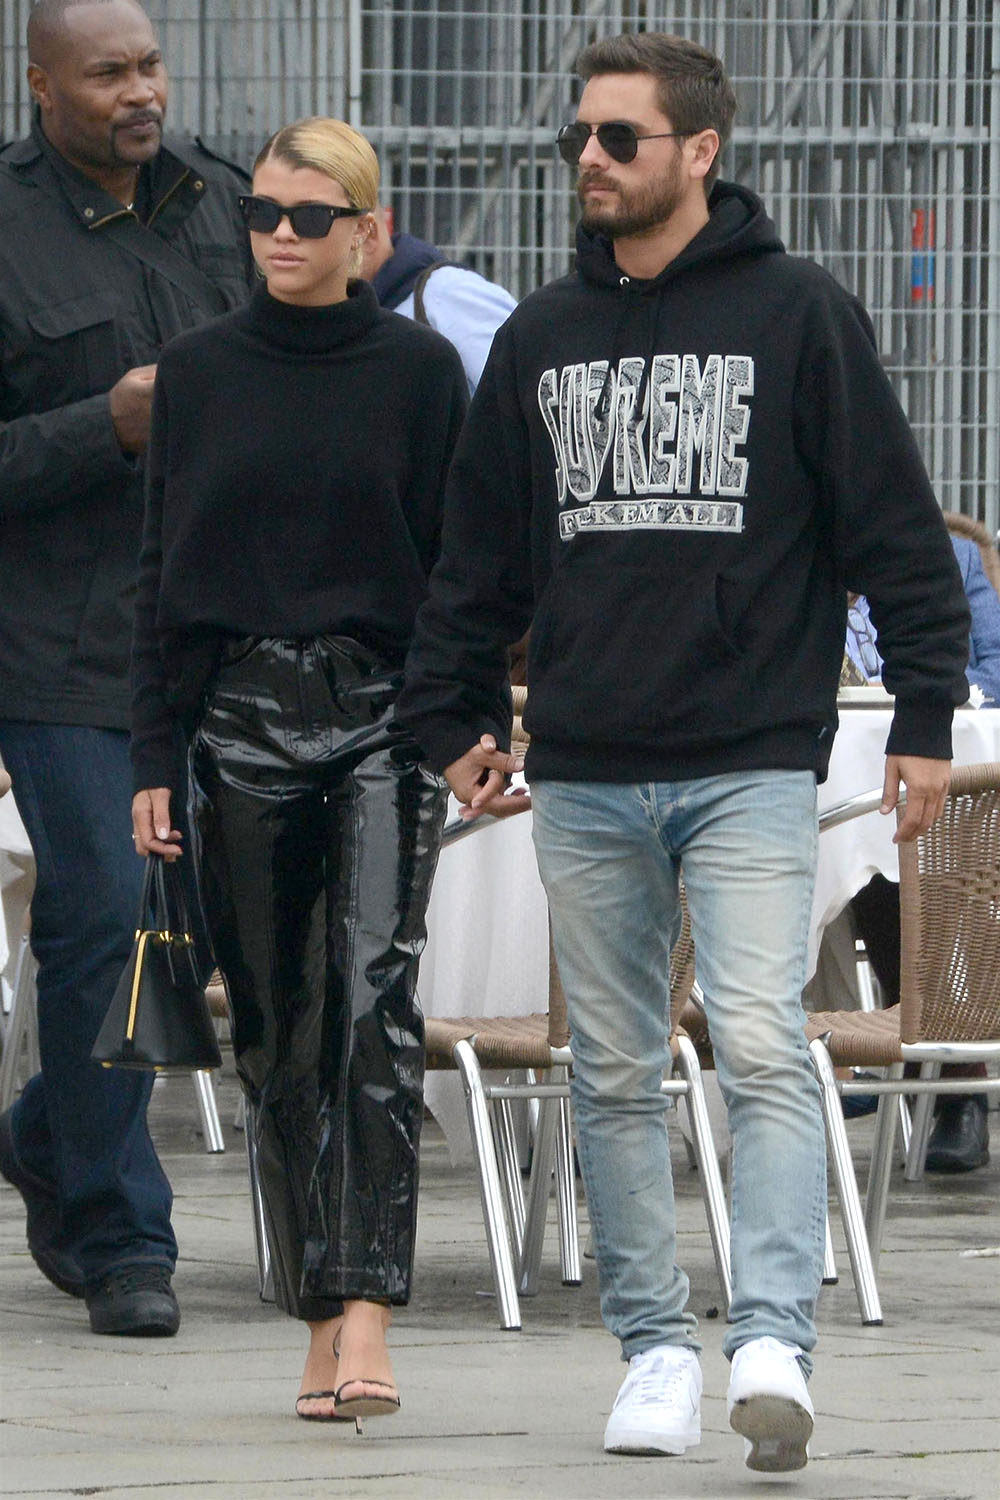 Sofia Richie and her boyfriend Scott Disick hold hands in Italy